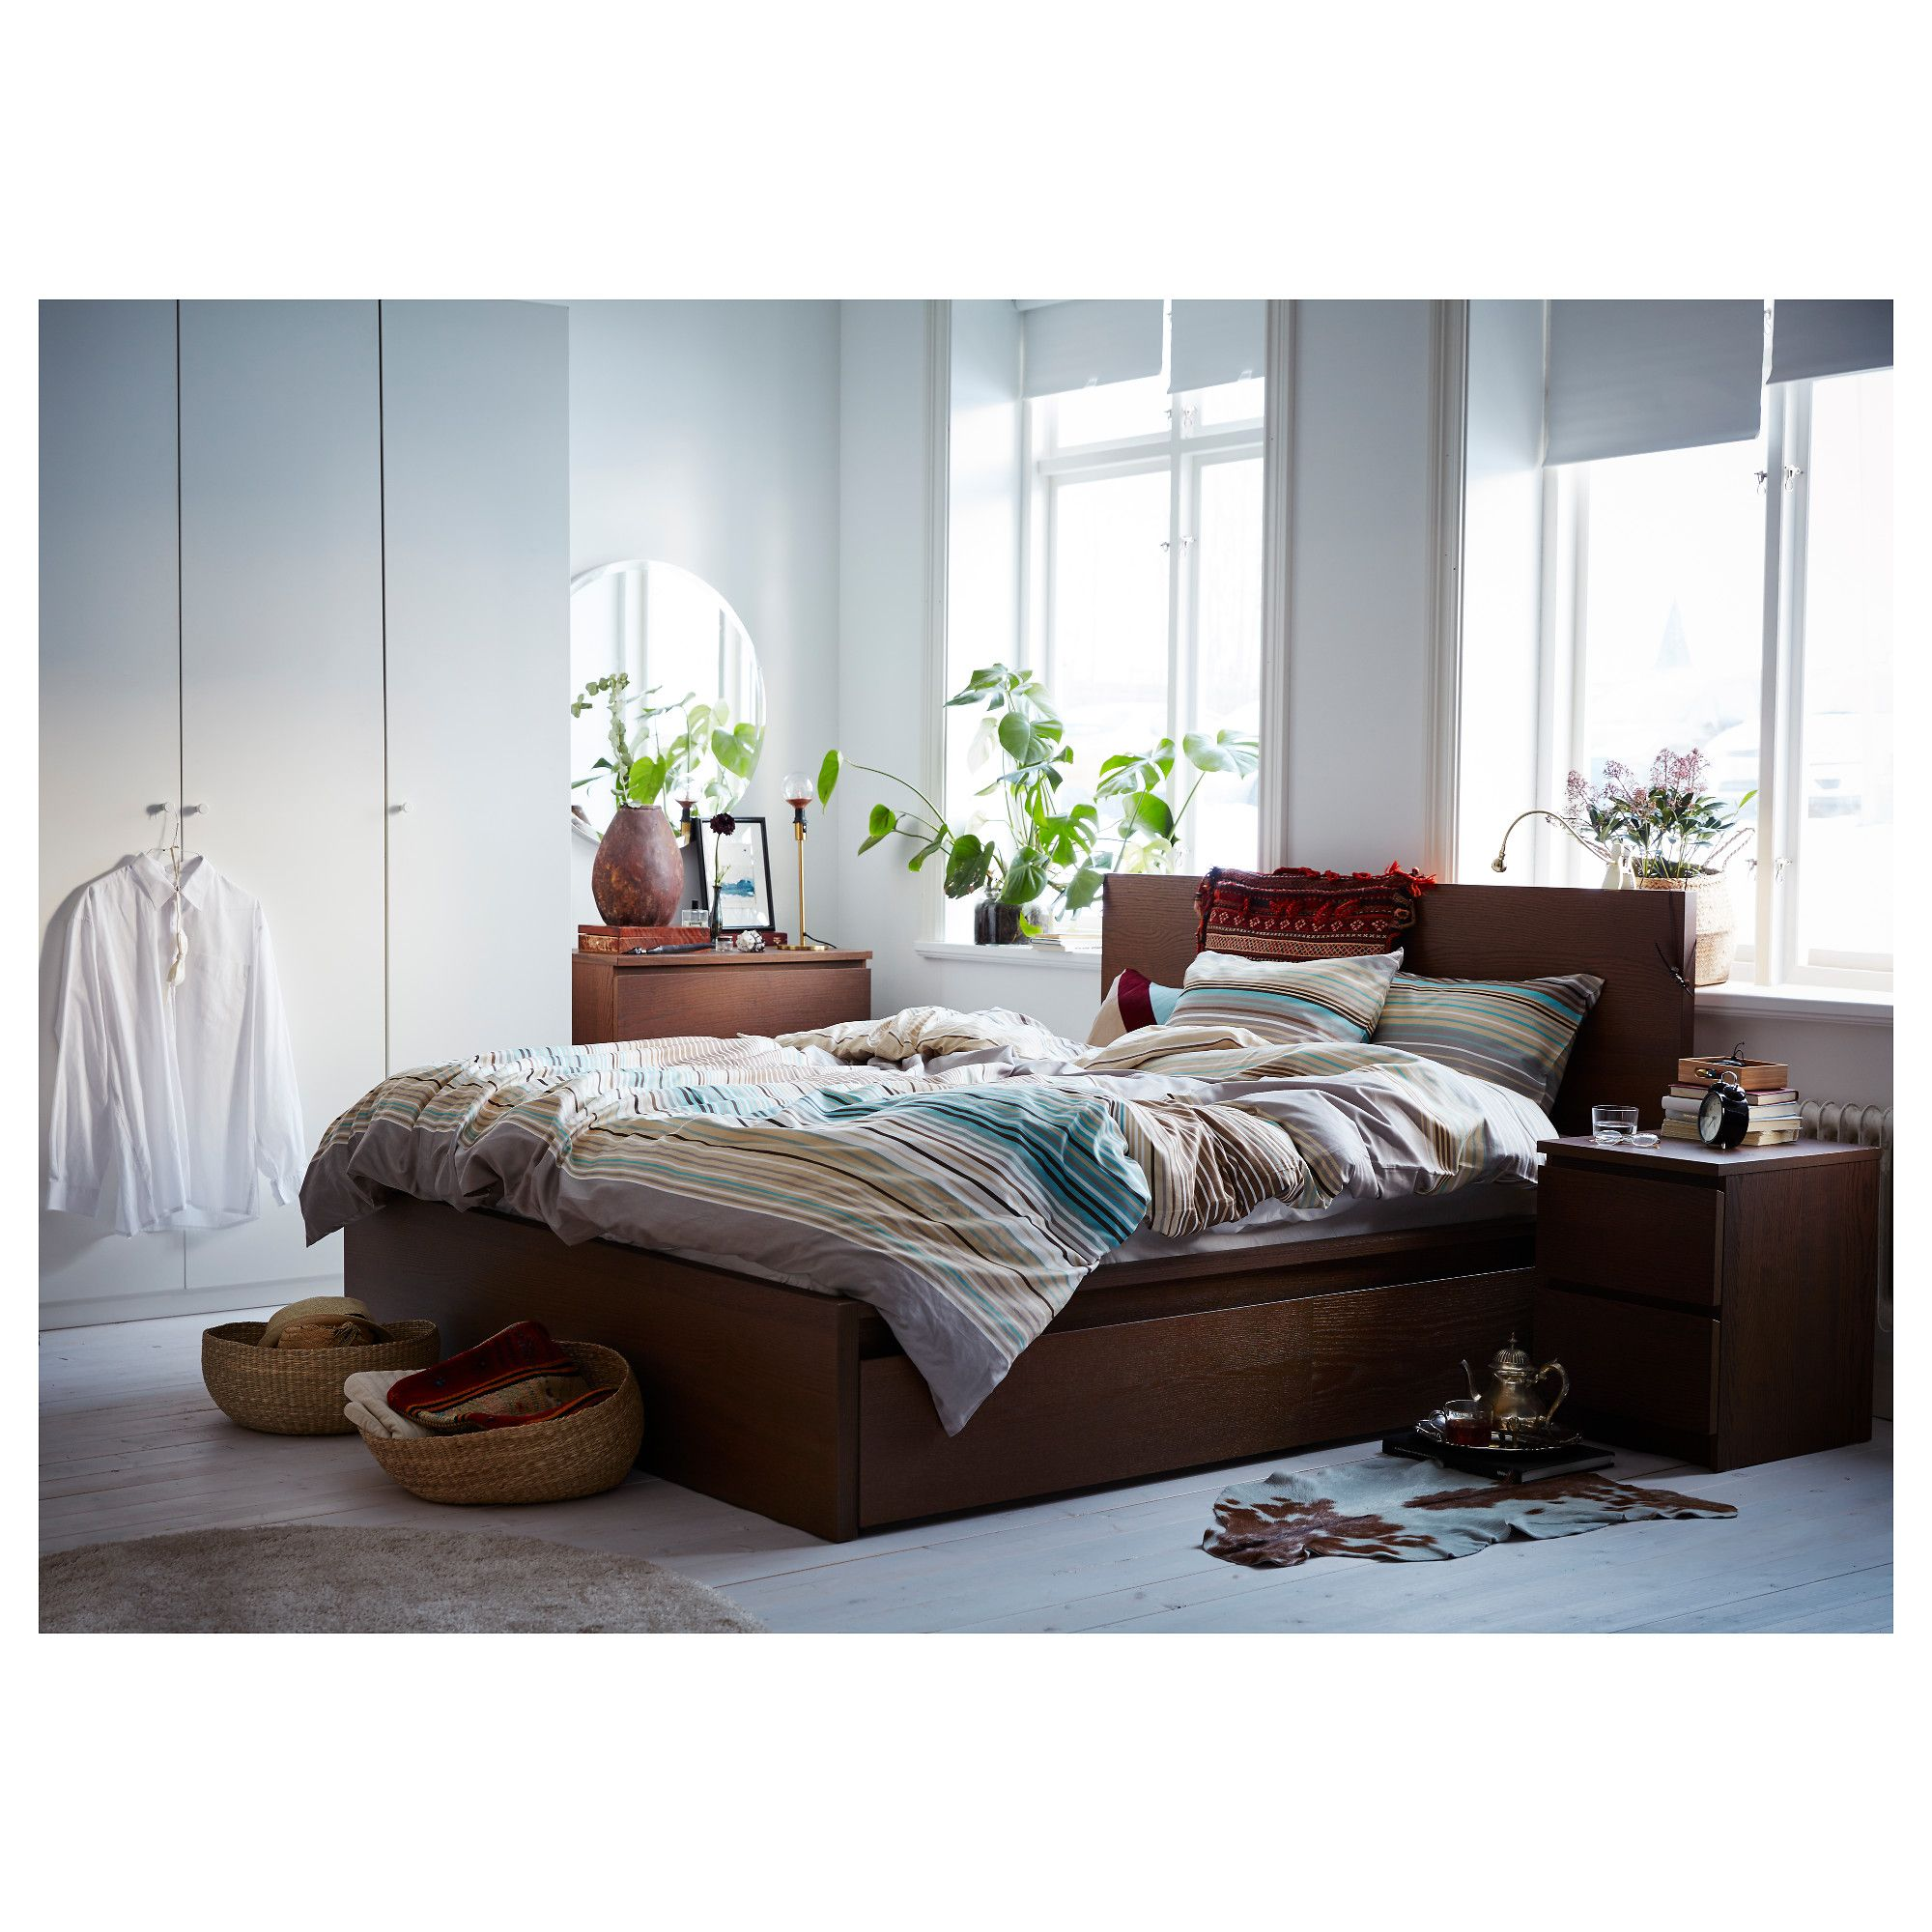 Furniture and Home Furnishings High bed frame, Malm bed